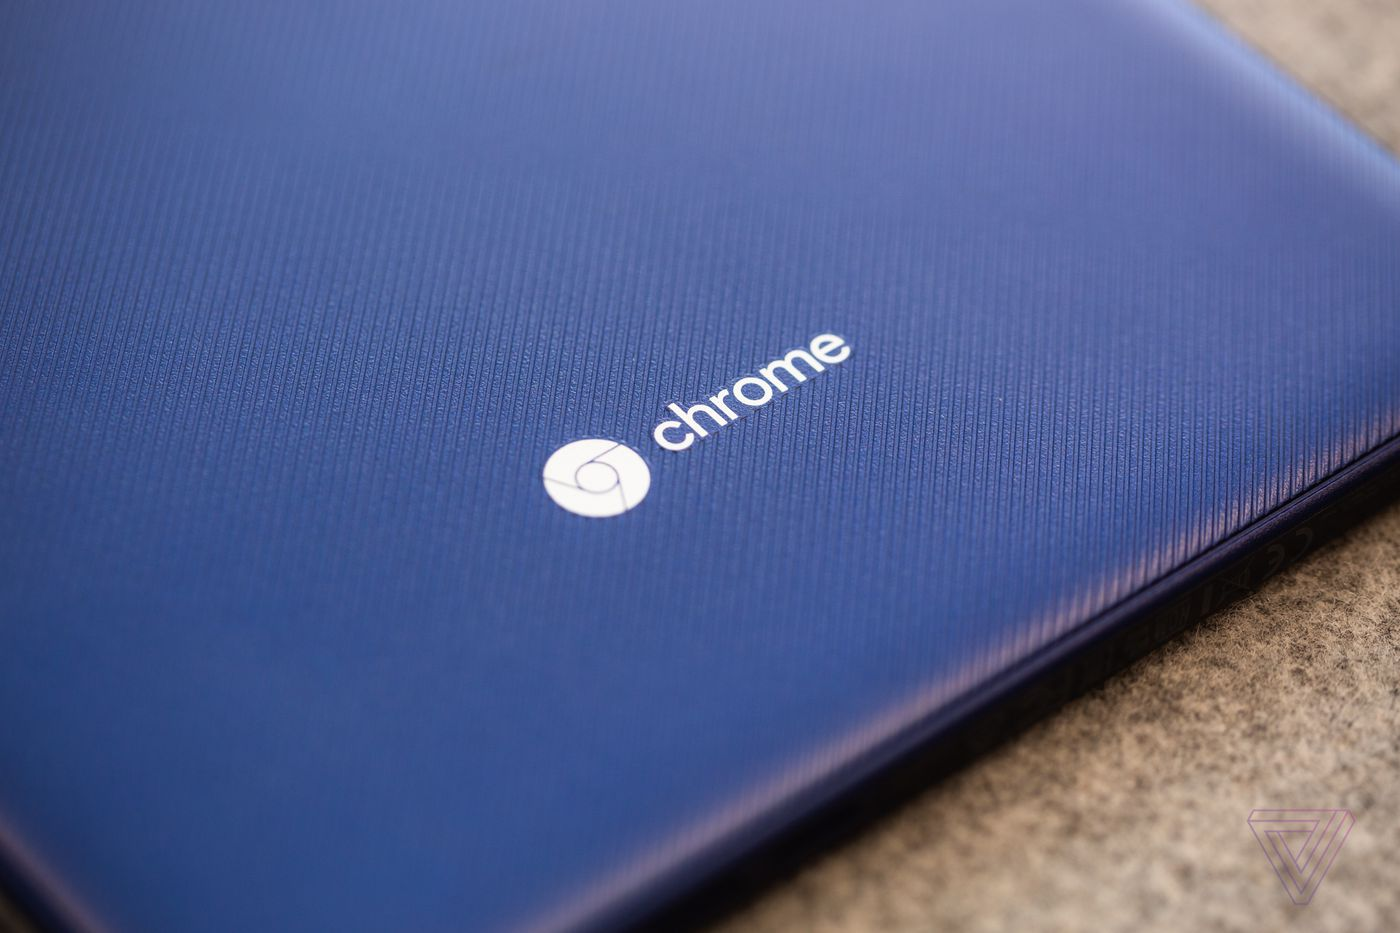 Chrome OS isn't ready for tablets yet - The Verge